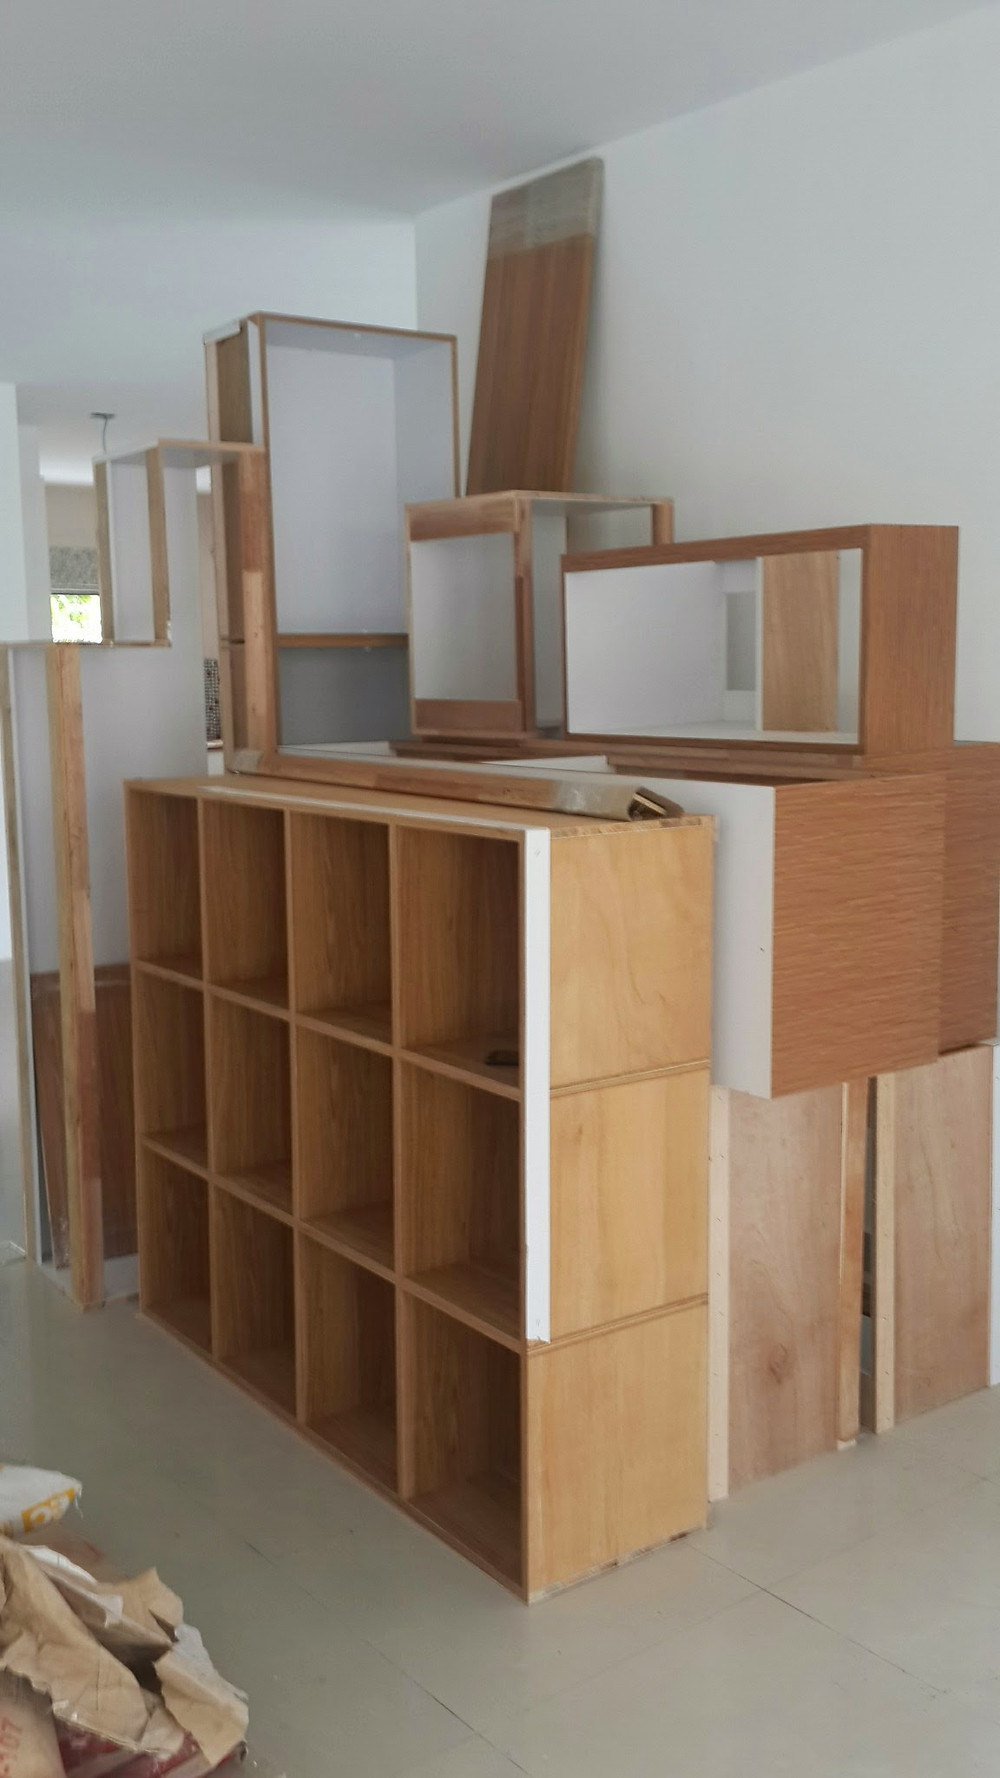 Cupboards and shelves waiting for installation